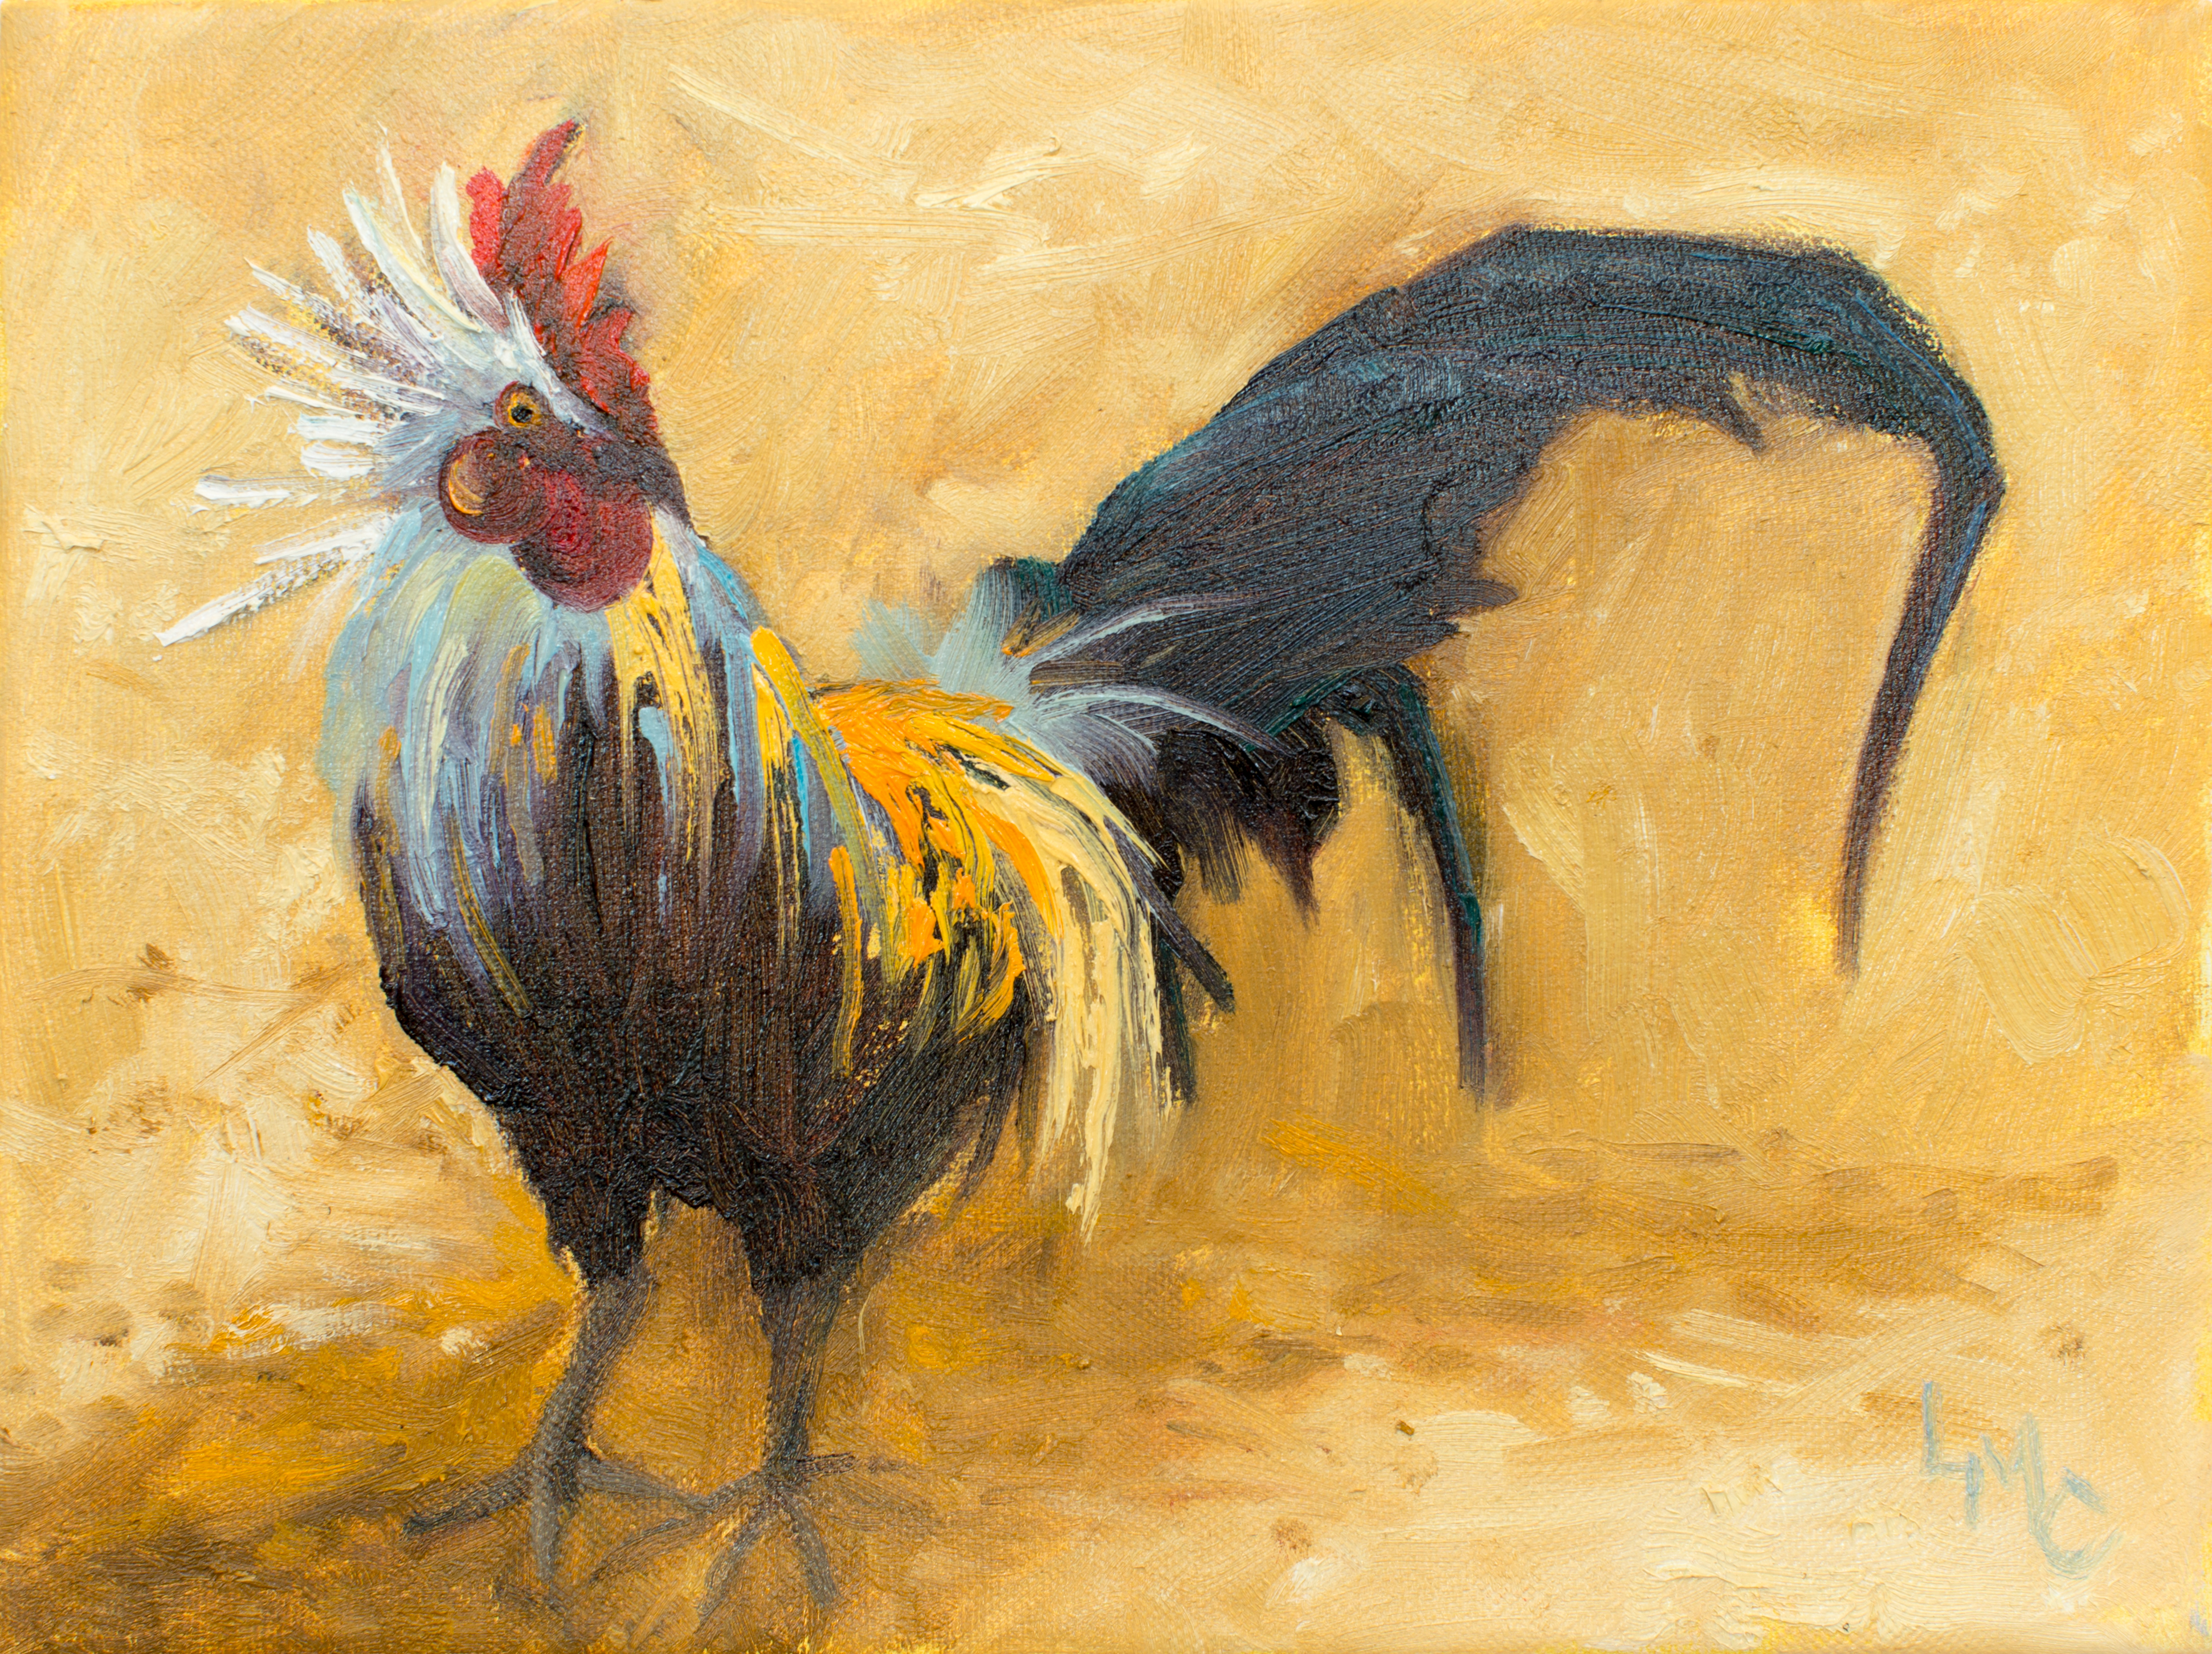 Rooster with Attitude 9x12